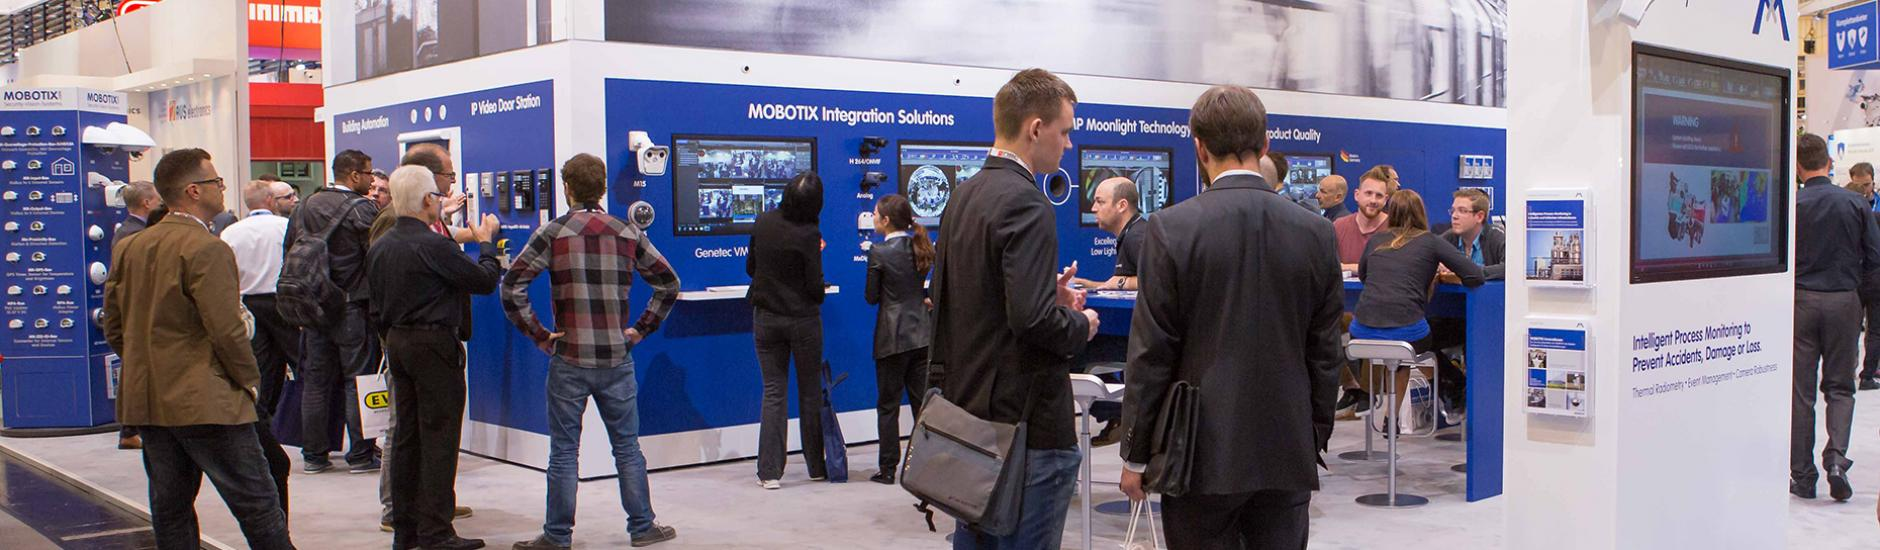 Career at MOBOTIX